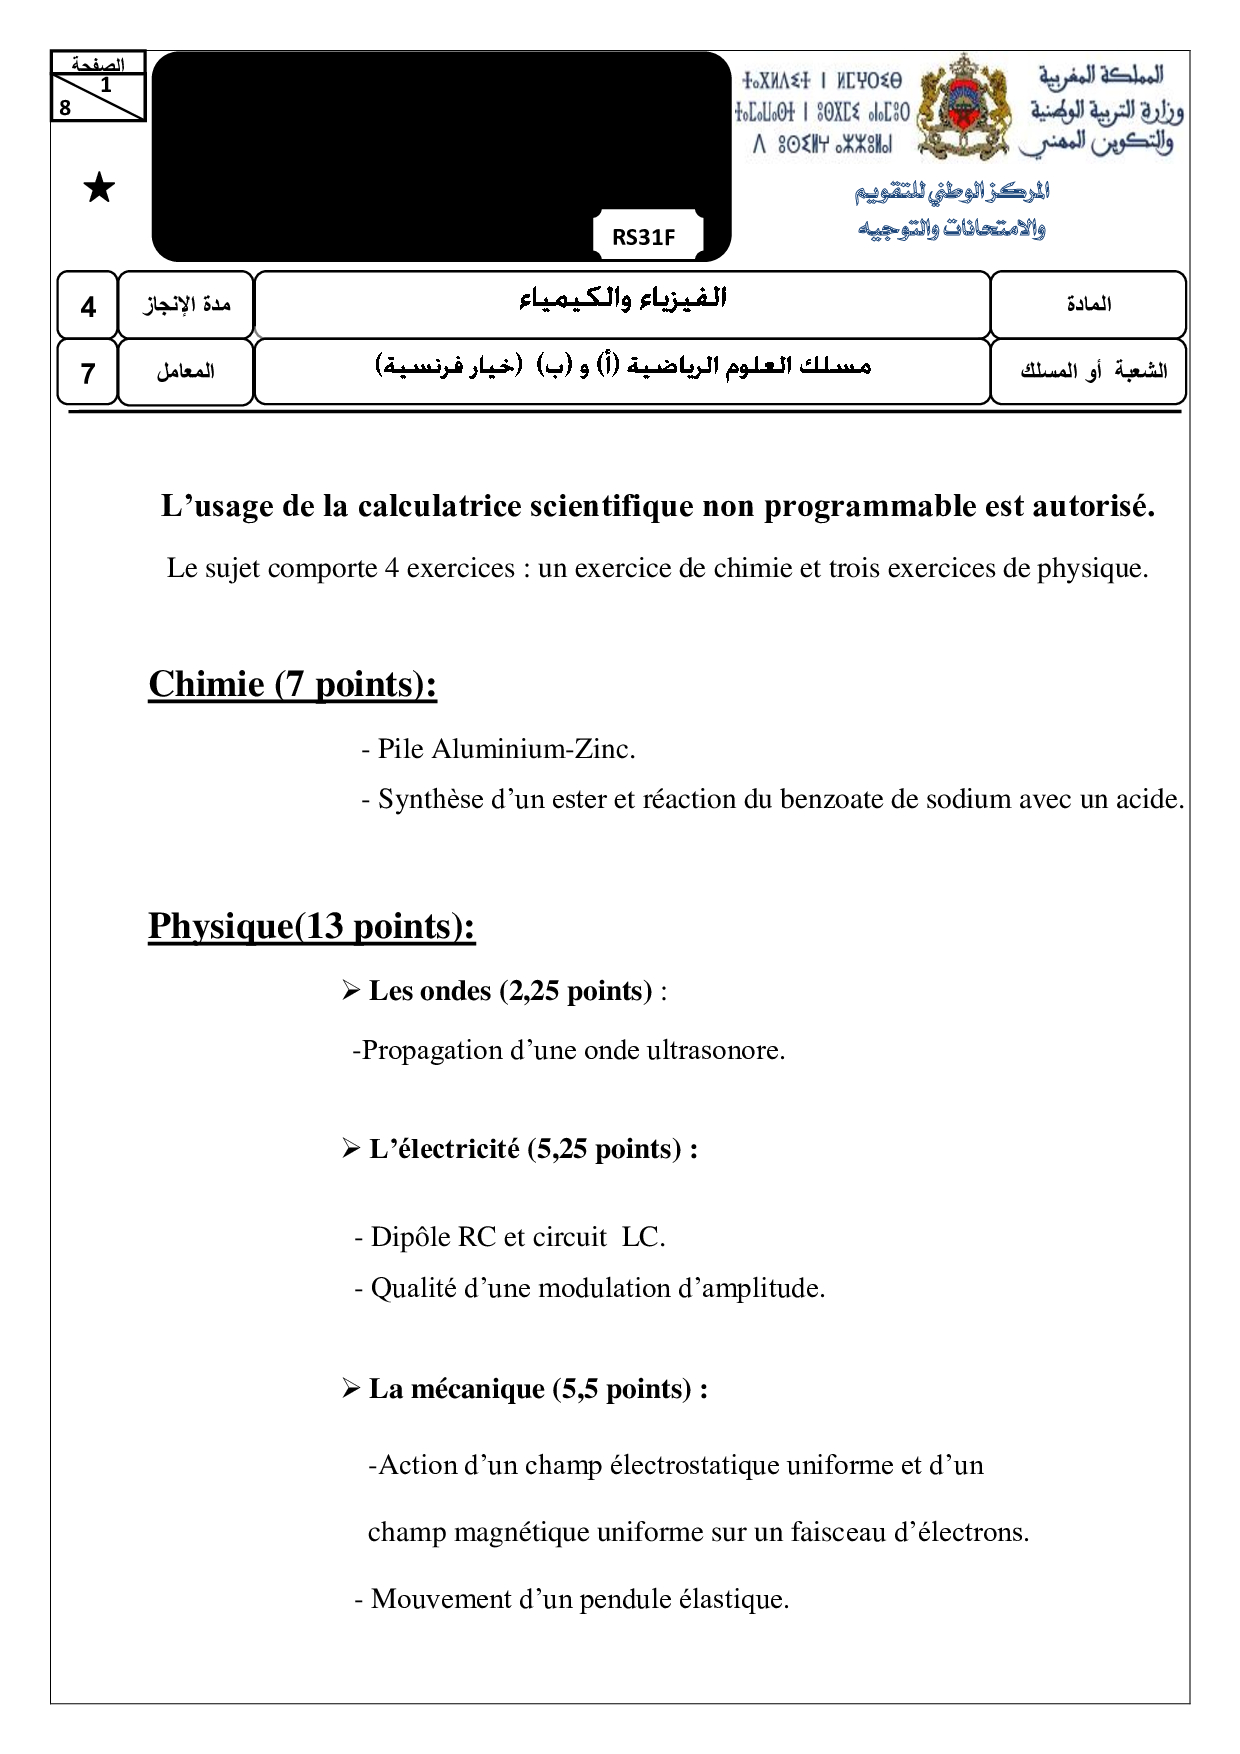 Examen National Physique-Chimie Sciences Maths 2016 Rattrapage - Sujet1.jpg